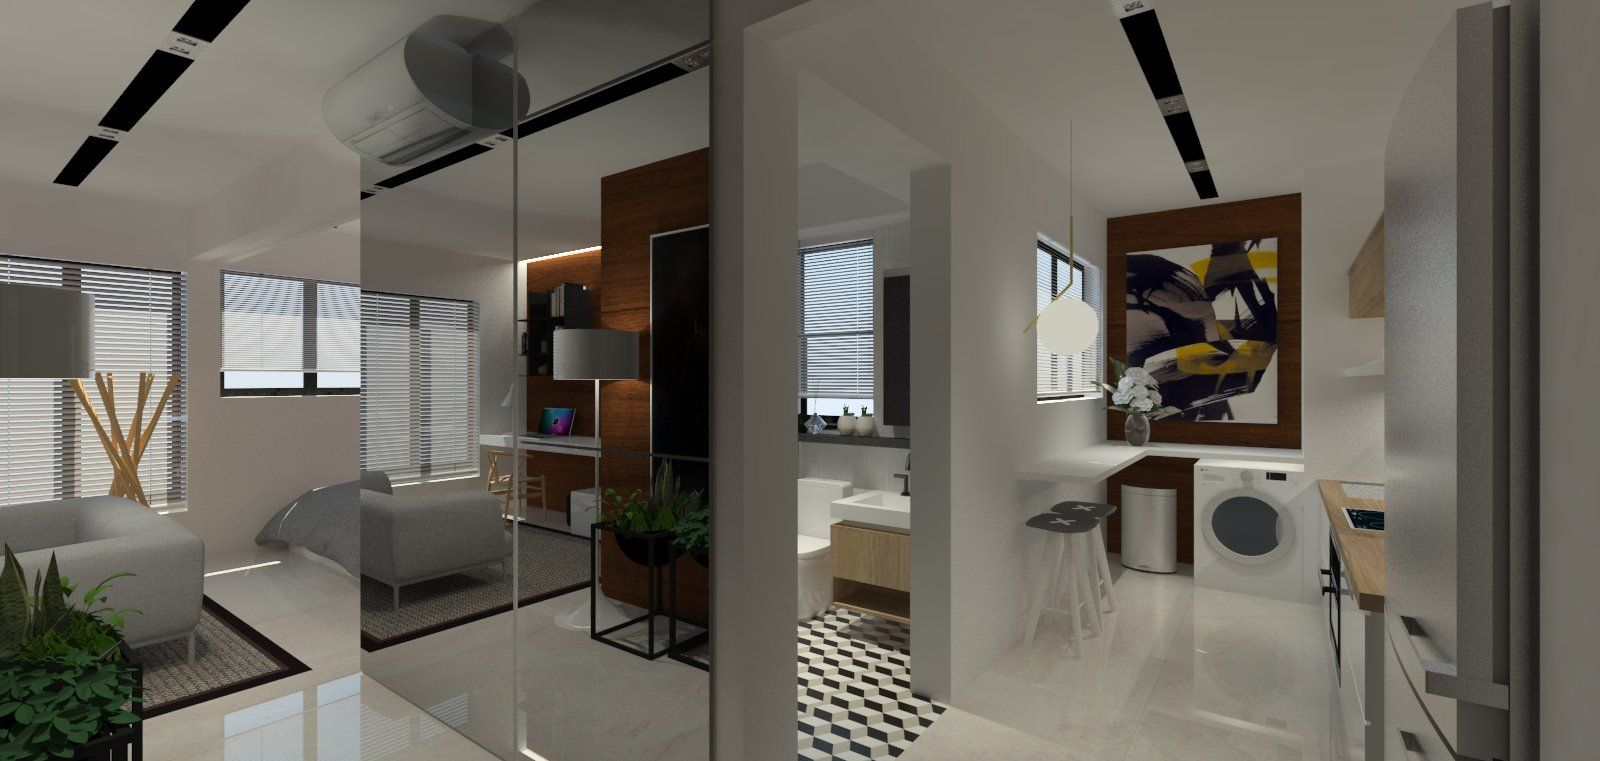 Hdb 2 Room Bto For Singles 47sqm Apartment Interior Design Conceived By The Owner Of This